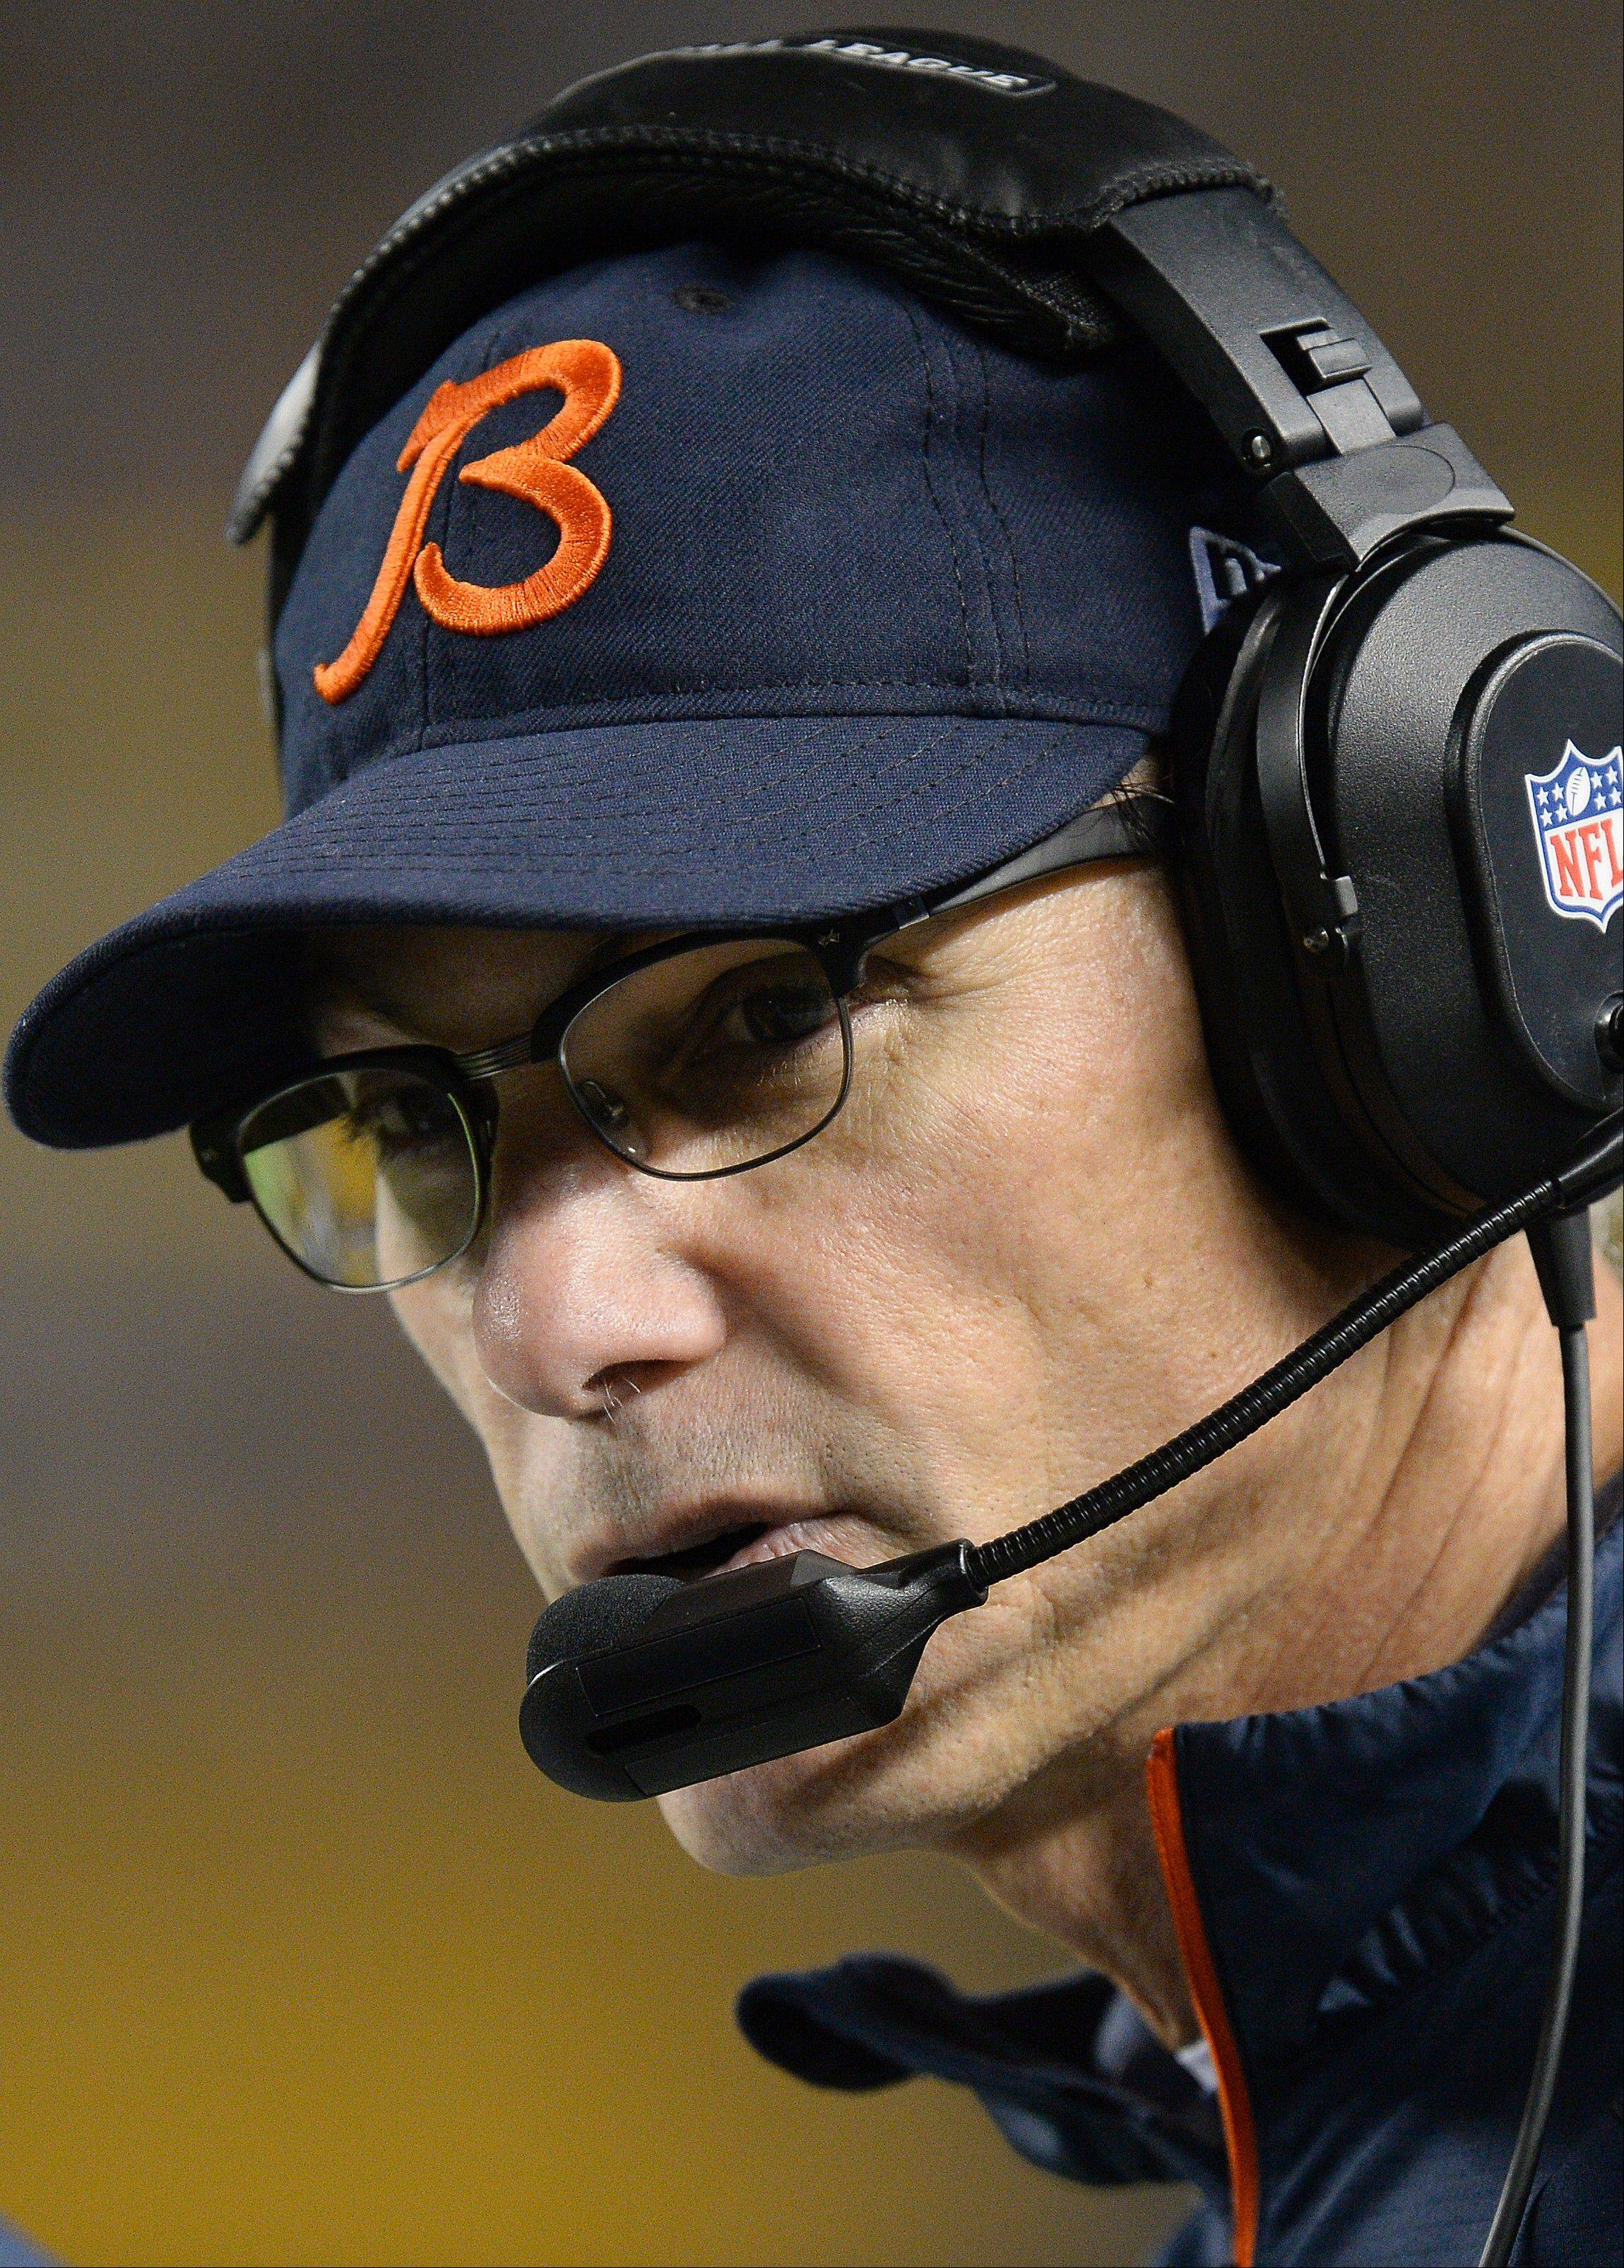 Associated PressBears head coach Marc Trestman says he's not dwelling on the team's 6-4 record.